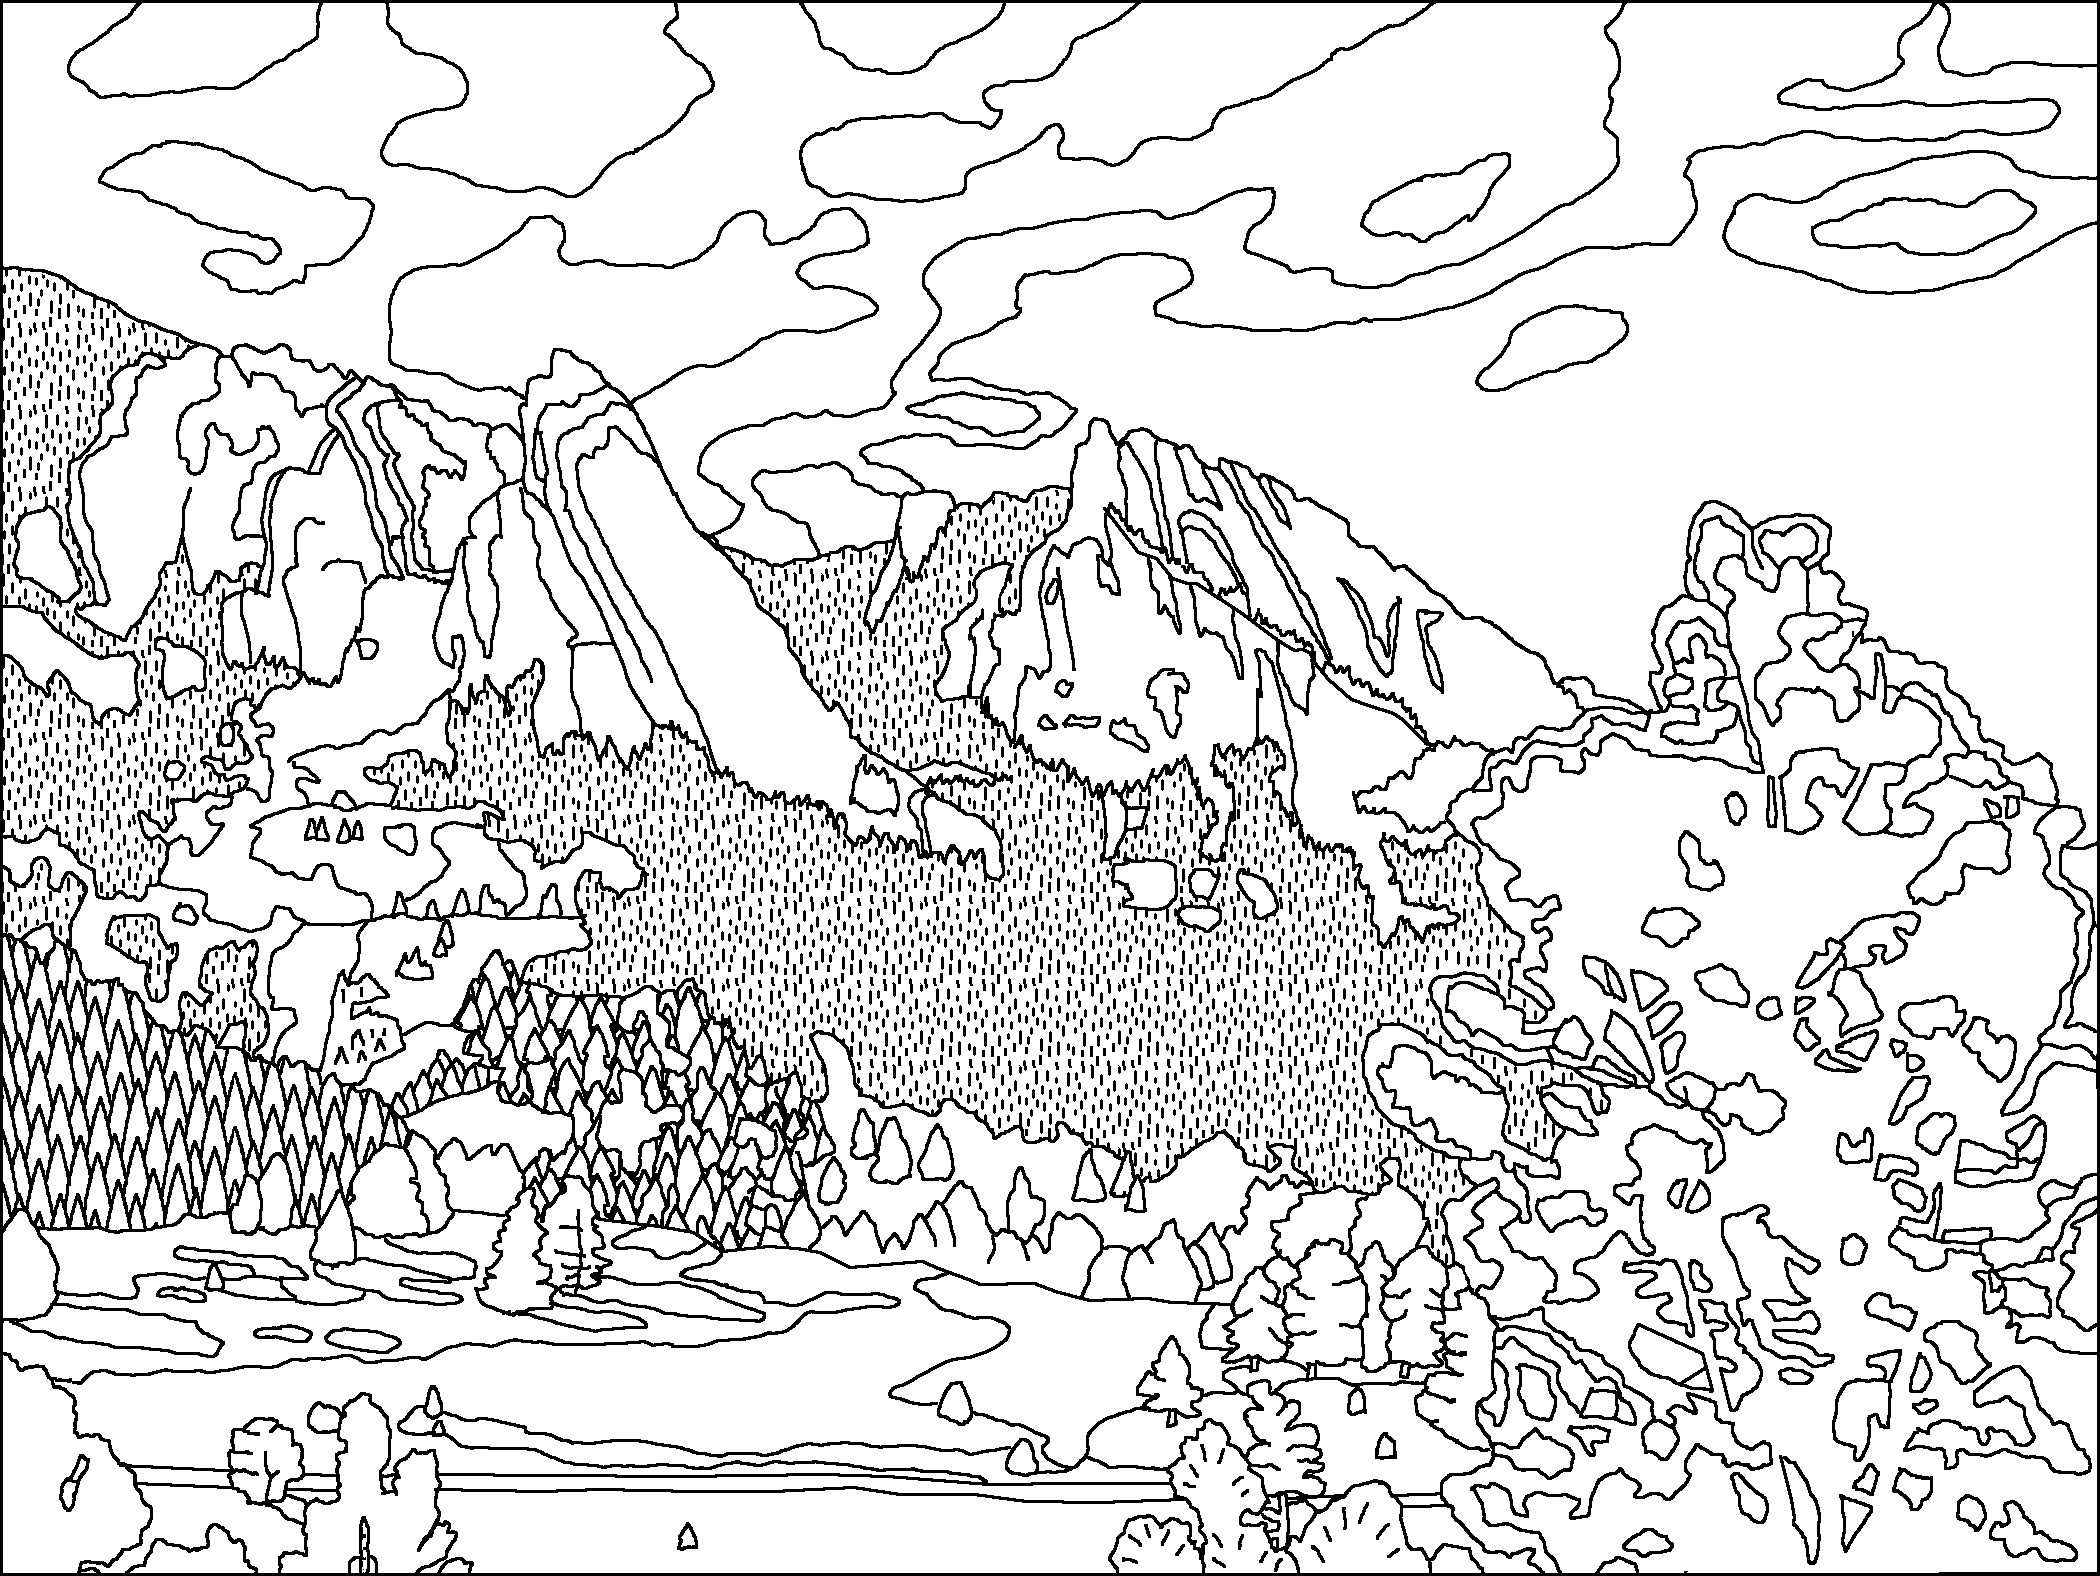 mountain pictures to color mountain scenery drawing at getdrawings free download pictures mountain to color